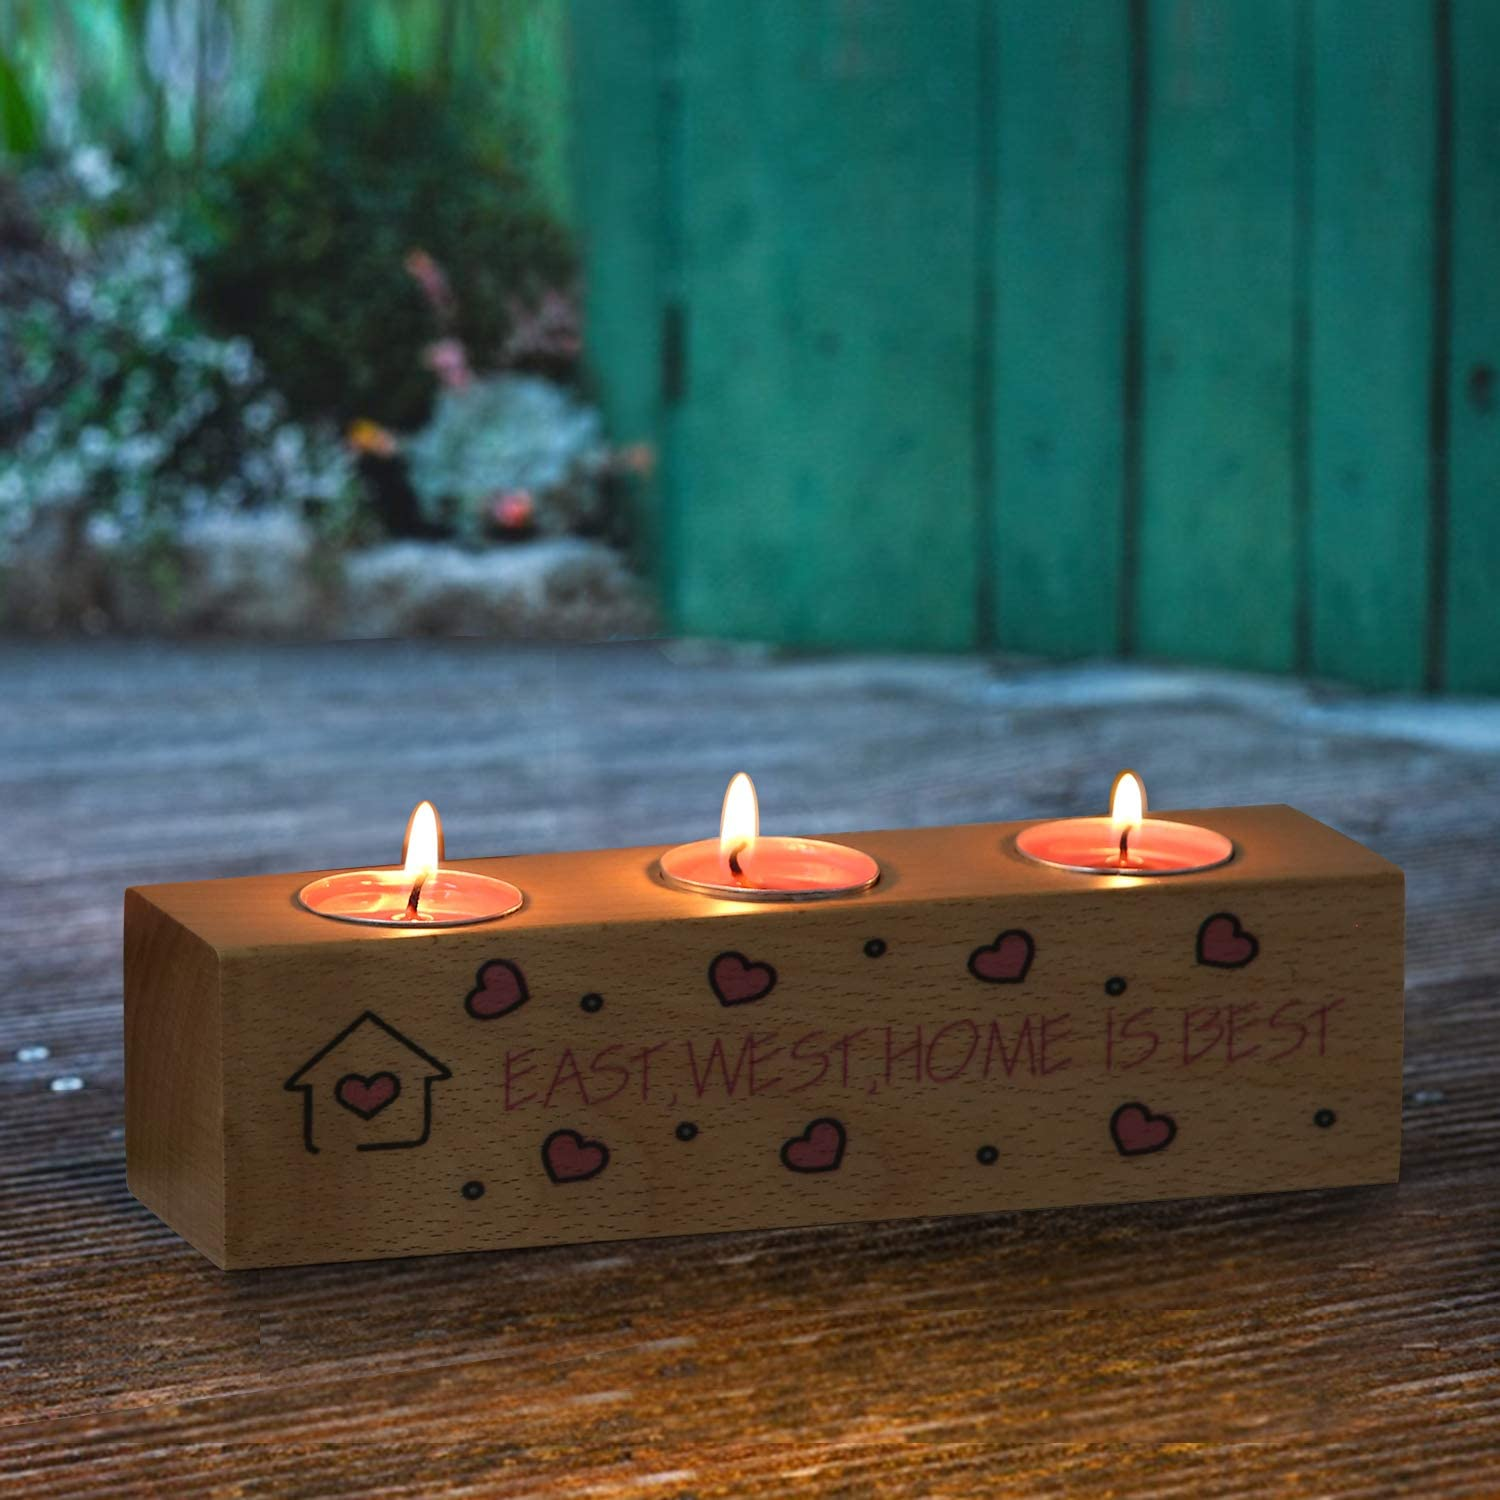 VECELO Excellence Wooden Candle Holder OFFicial site Tealight -Personalized Wood Holders